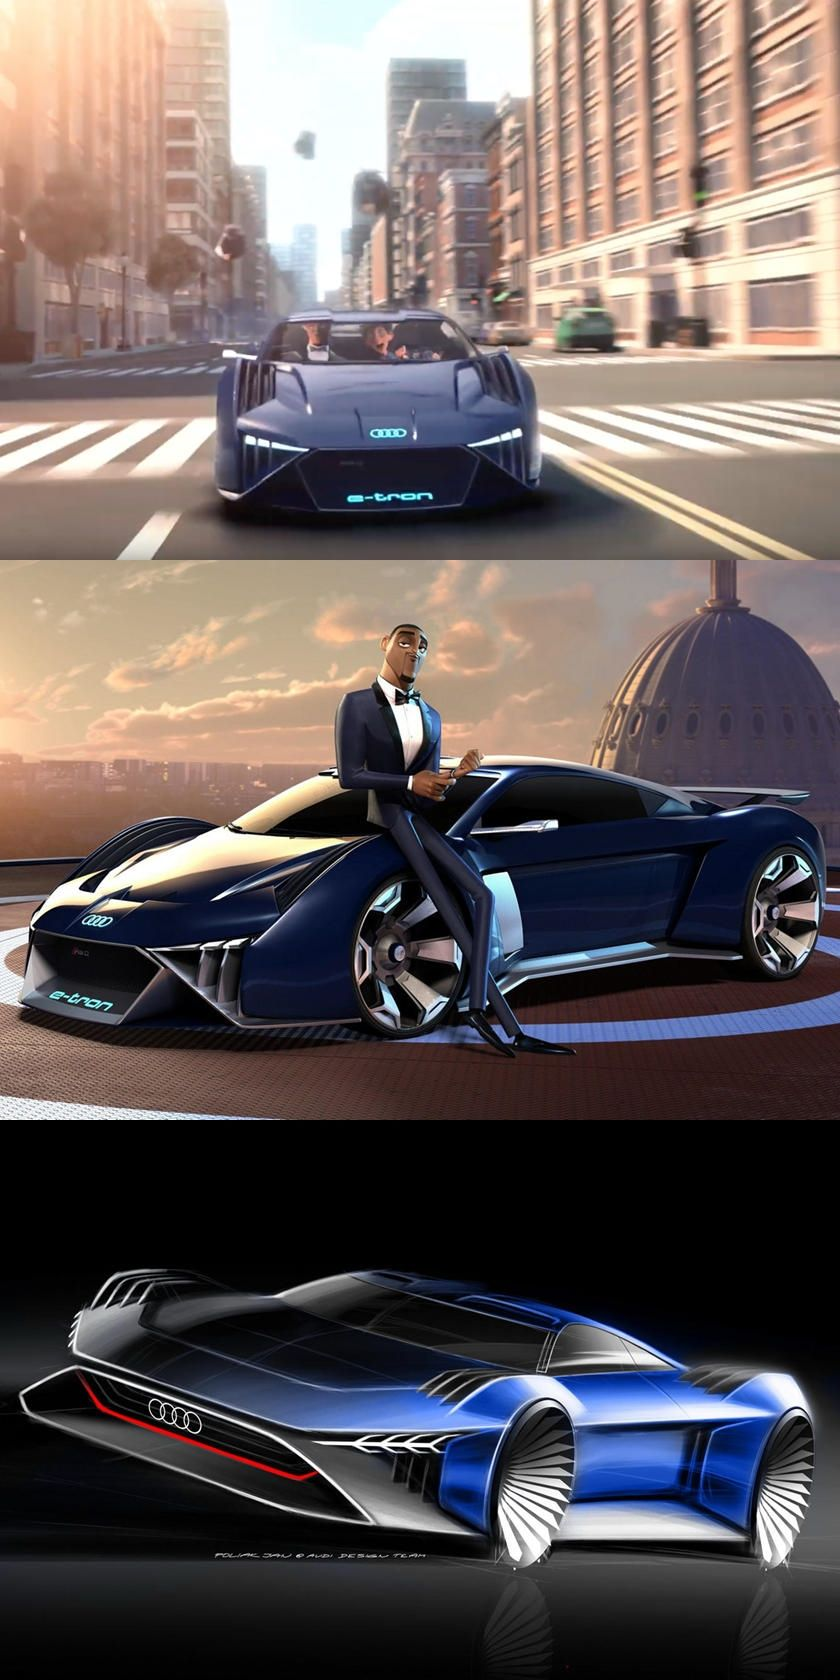 Audi Rsq E Tron Supercar Comes To Life The Virtual Electric Supercar Is Set To Star In Upcoming Movie Spies Supercars Wallpaper Super Luxury Cars Super Cars